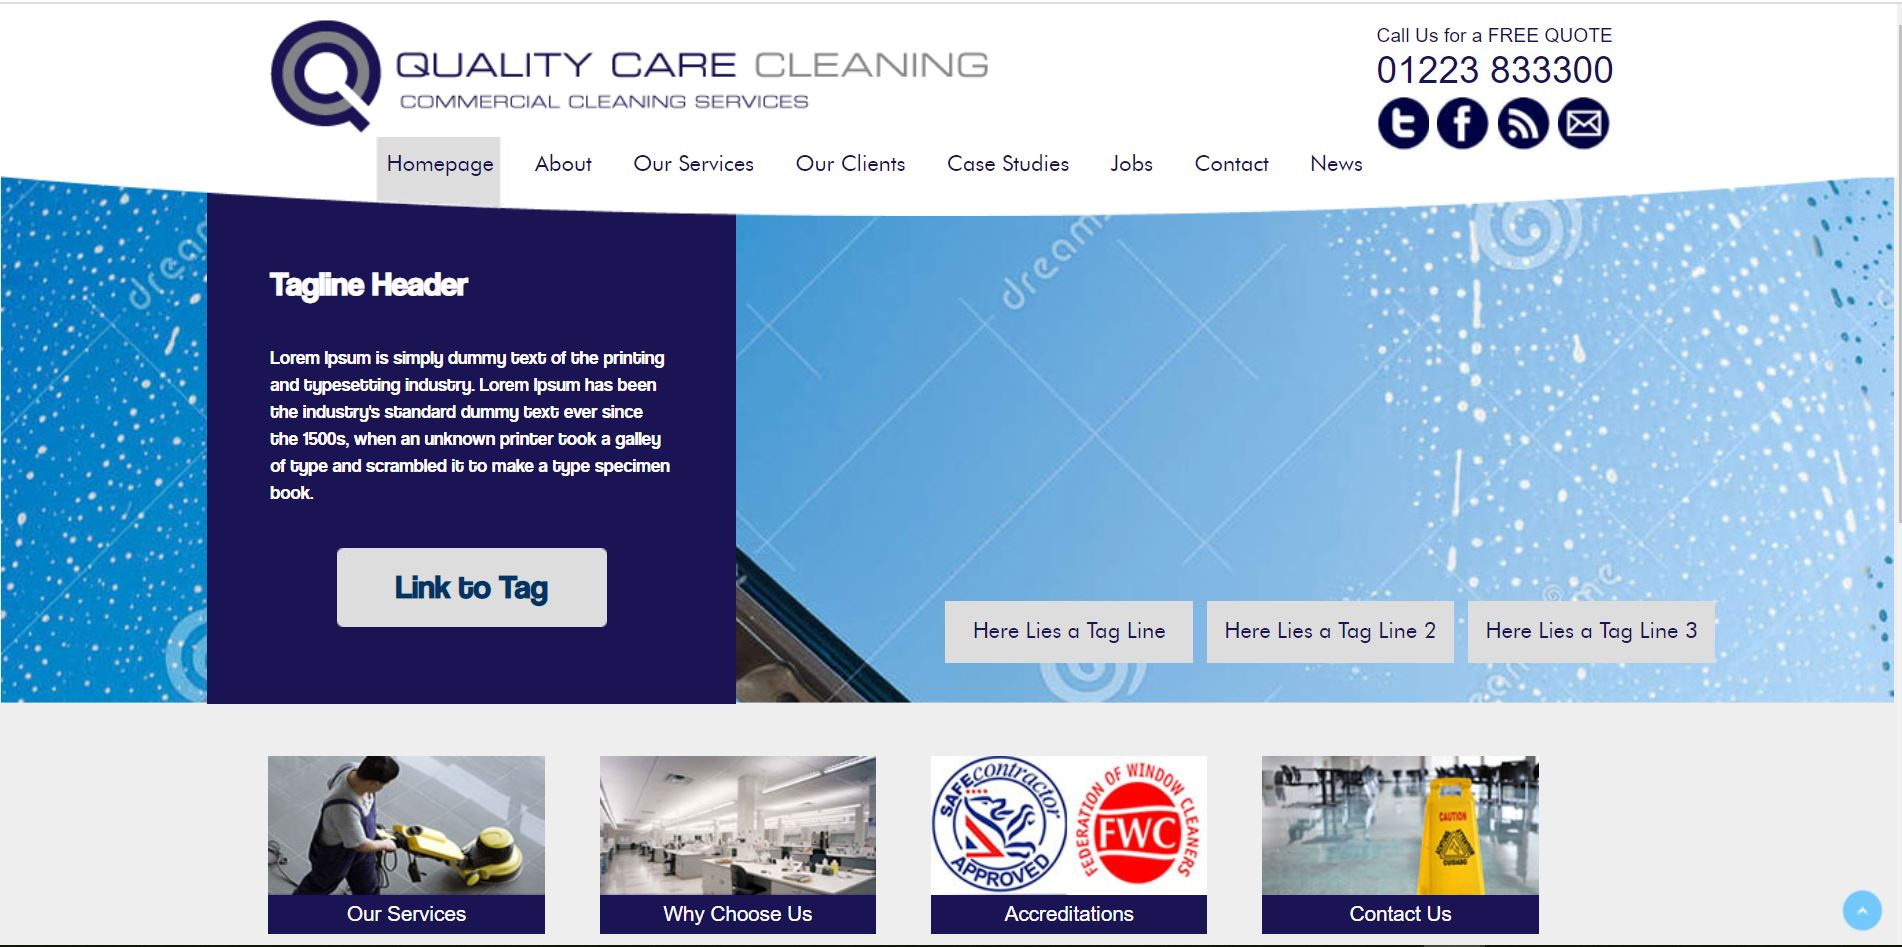 qualitycarecleaning.co.uk